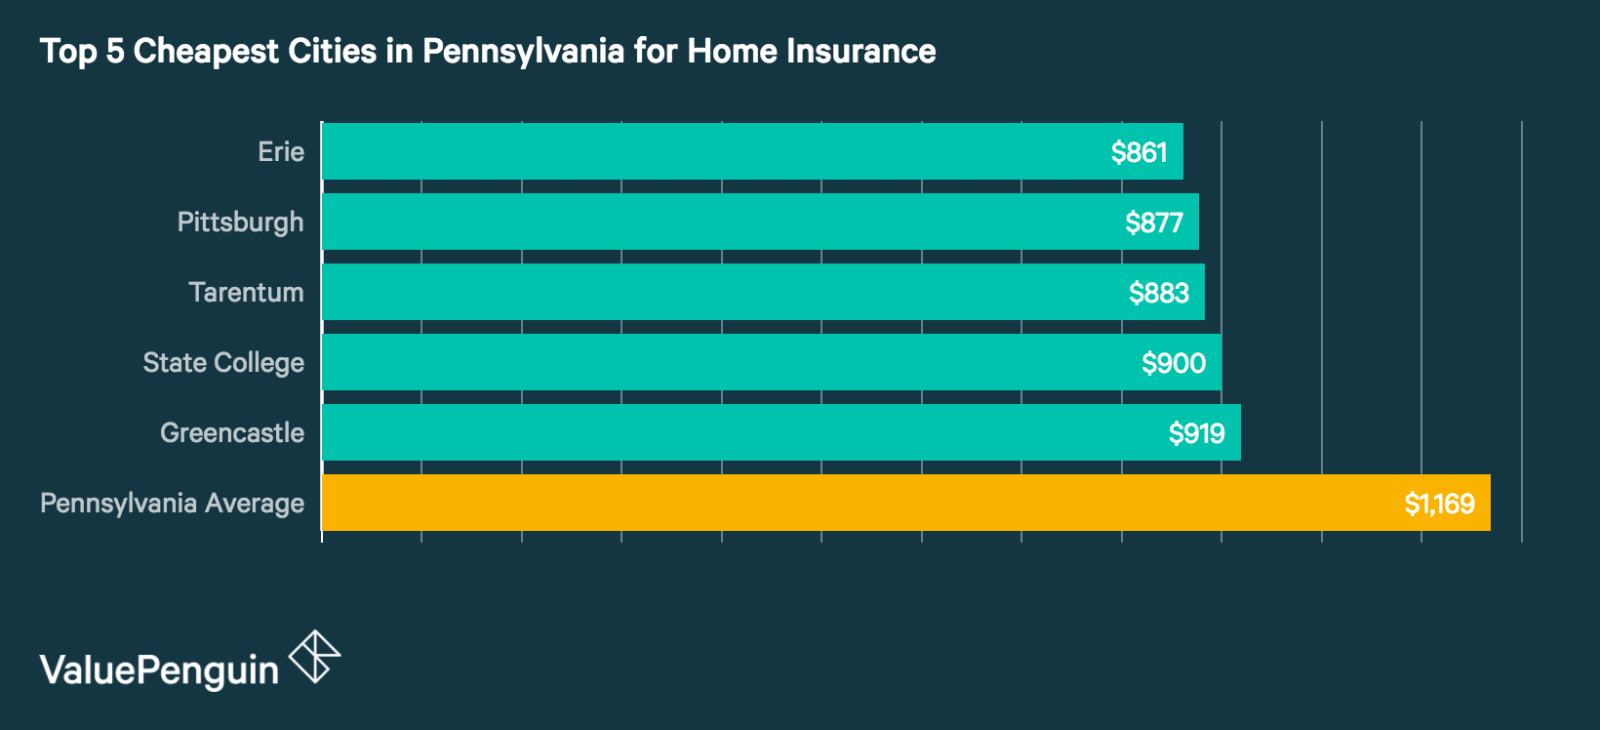 Top 5 Cheapest Cities in Pennsylvania for Homeowners Insurance